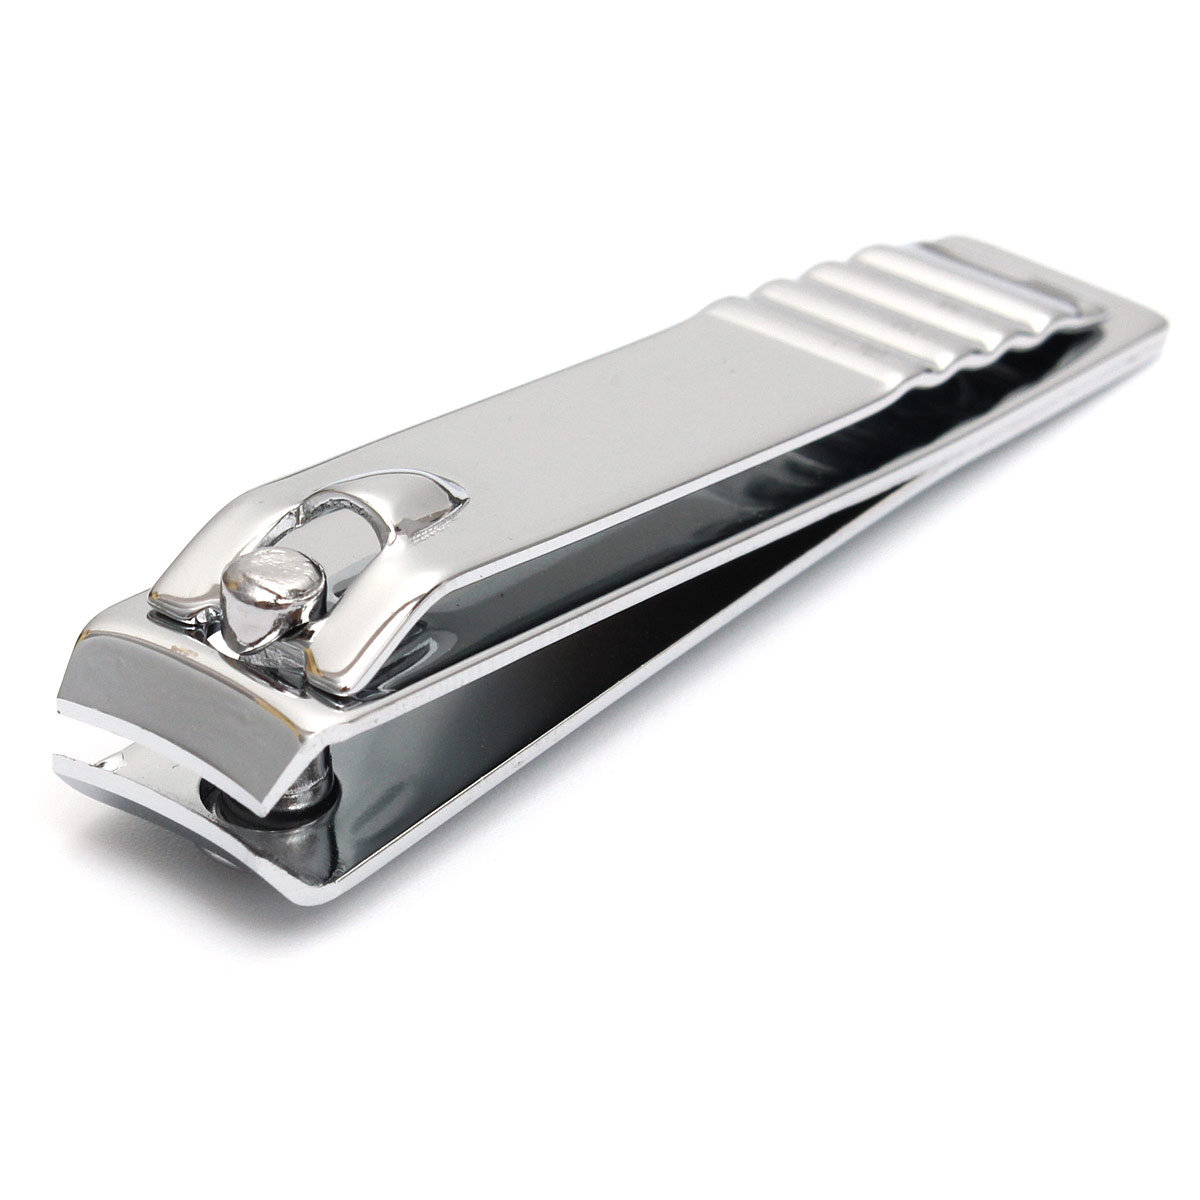 Professional Stainless Steel Nail Clipper Cutter Trimmer Manicure Hand